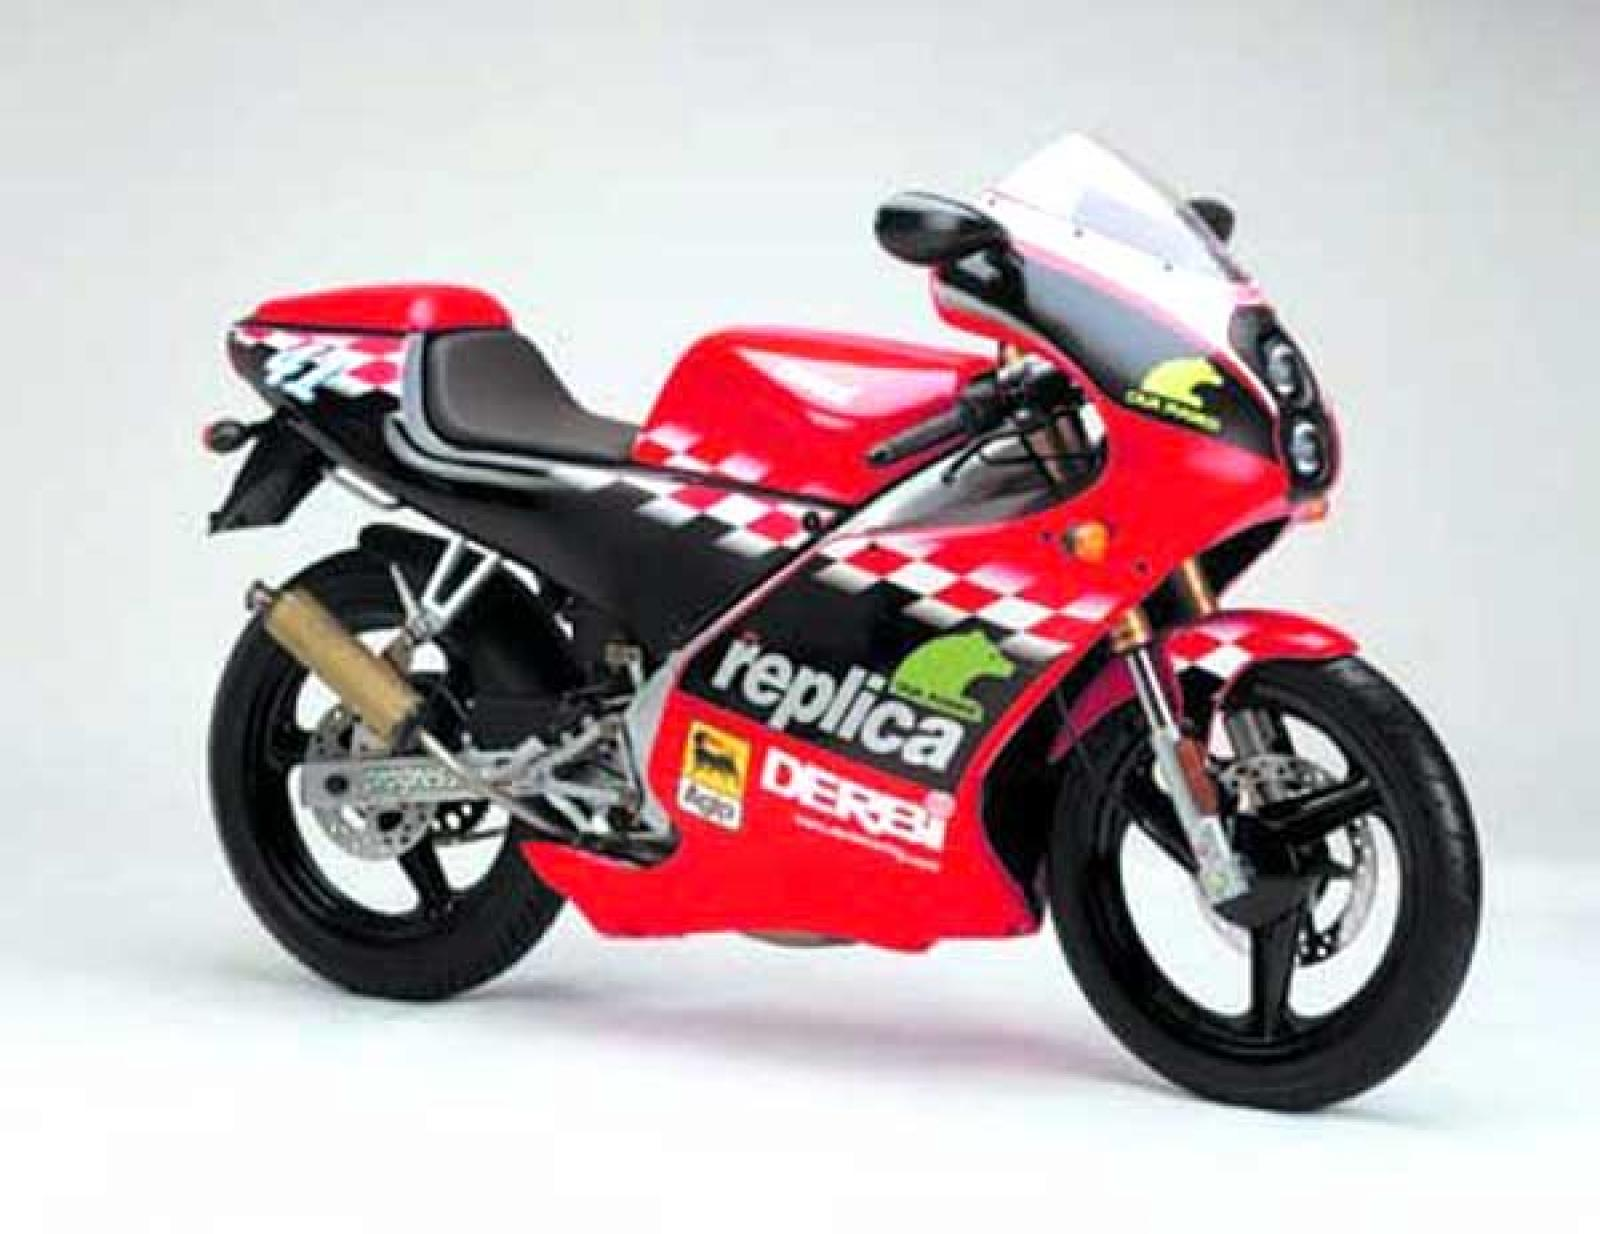 2009 derbi gpr 50 racing race replica moto zombdrive com. Black Bedroom Furniture Sets. Home Design Ideas